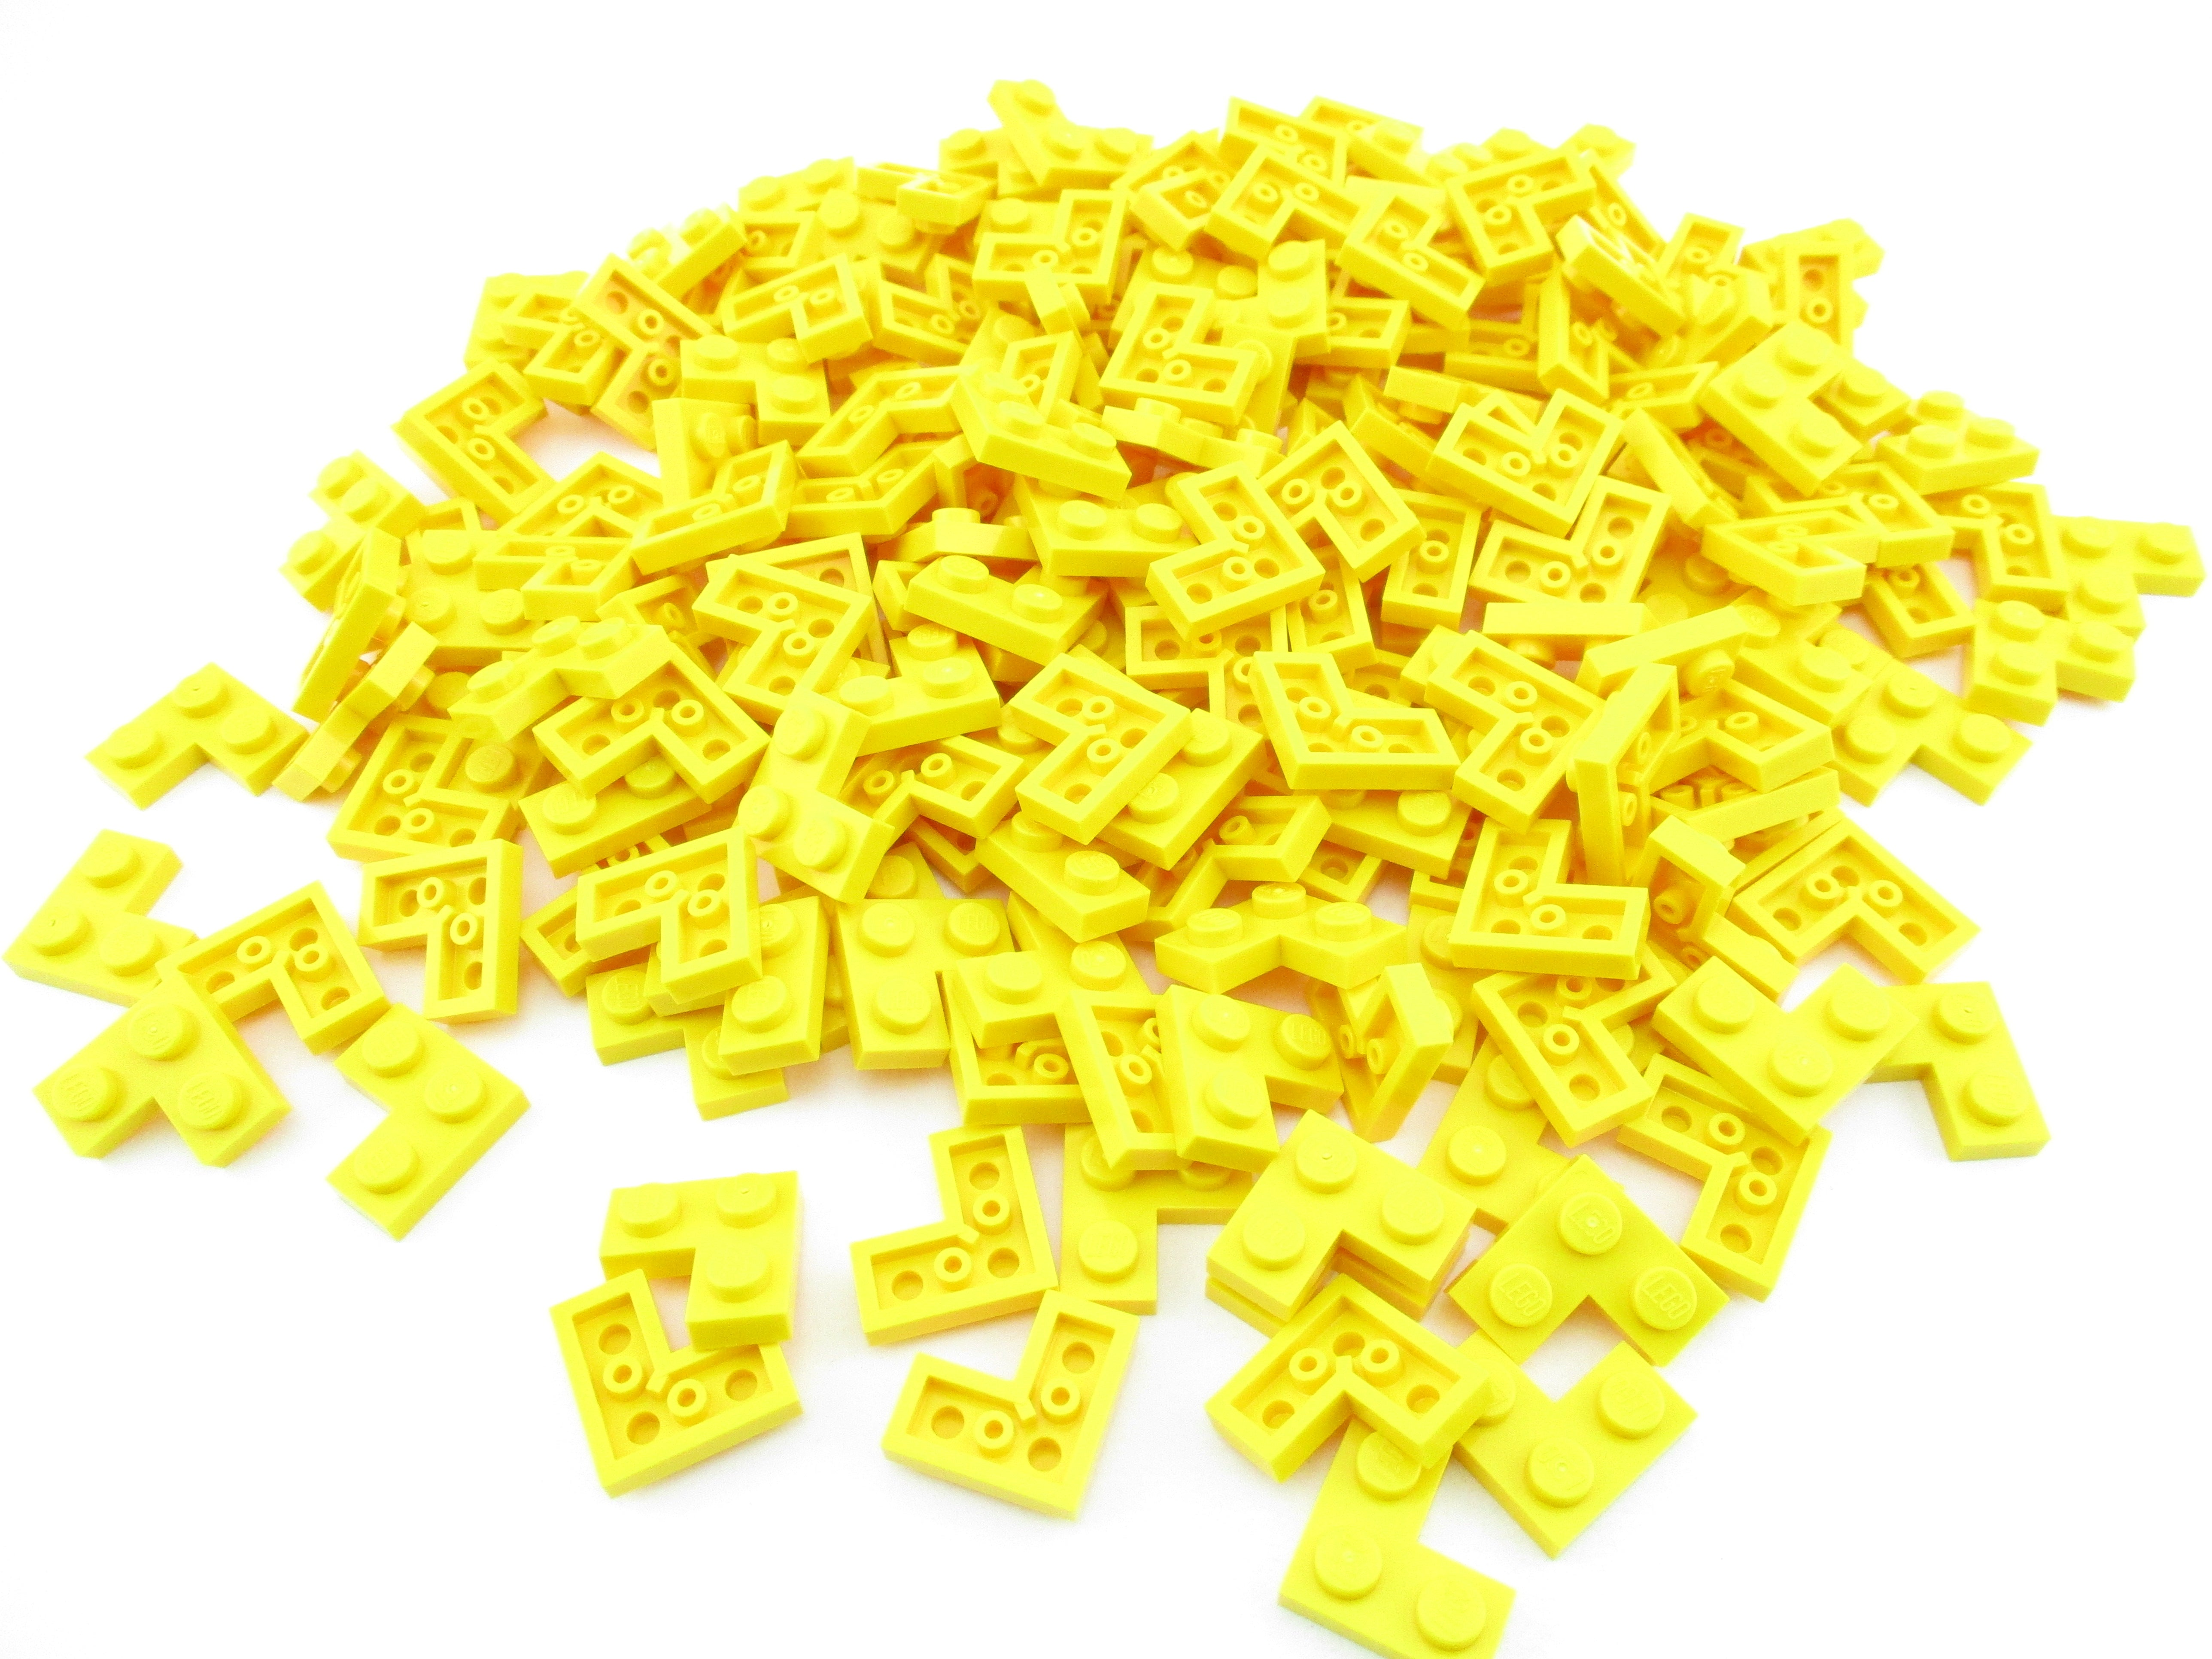 LEGO Yellow Plate 2x2 Corner Lot of 100 Parts Pieces 2420